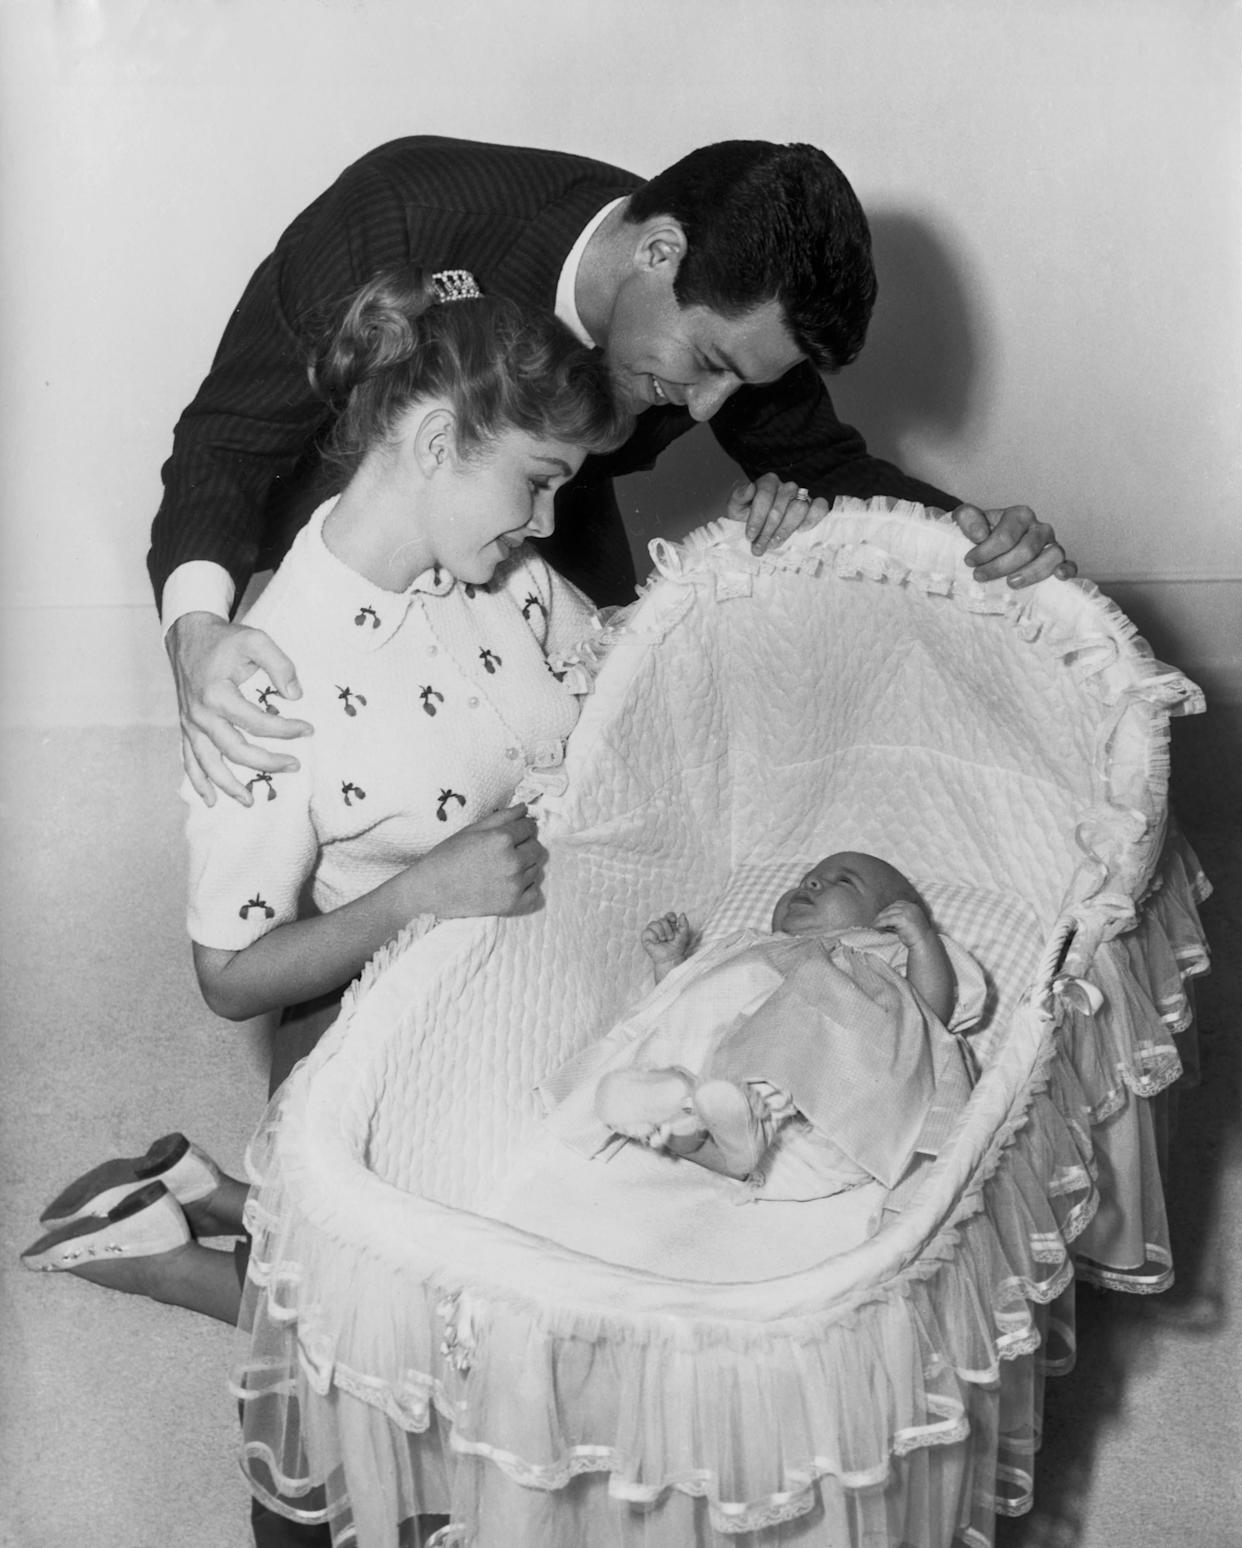 Carrie Frances Fisher was born on Oct. 21, 1956. Her father, Eddie Fisher, and mother, Debbie Reynolds, watch over her.